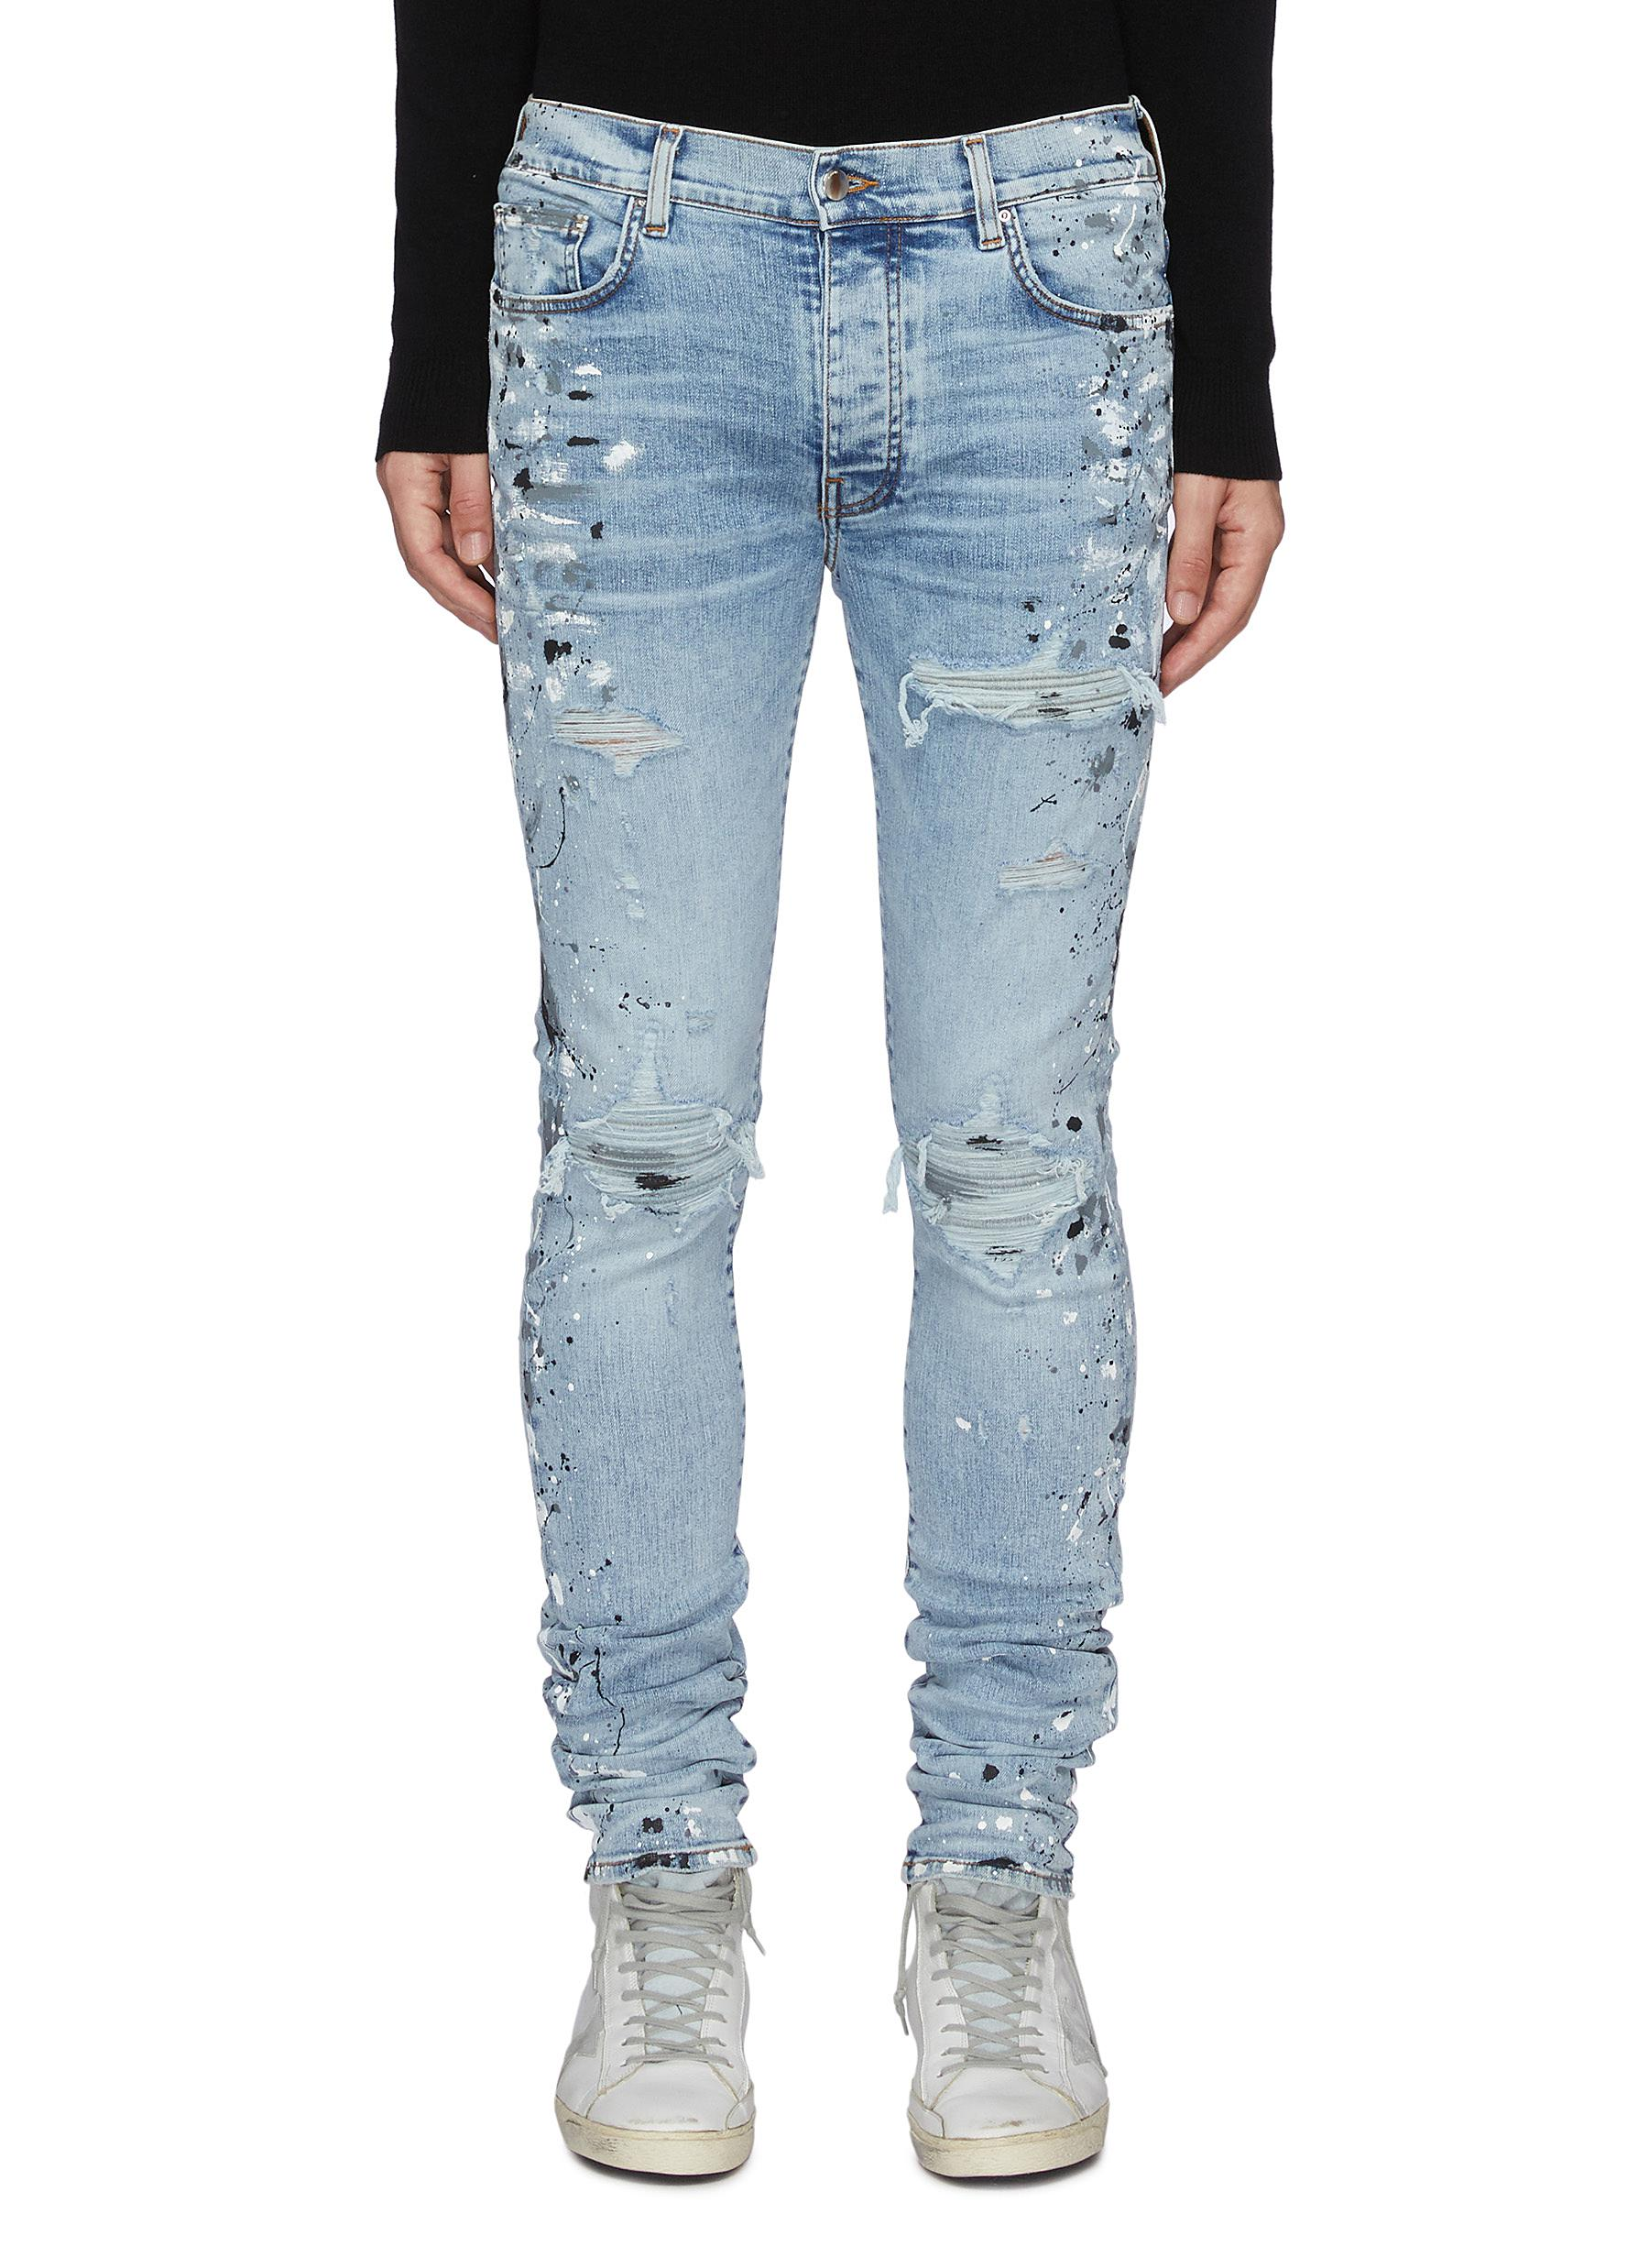 MX1' Spray Paint Distressed Washed Slim Fit Jeans